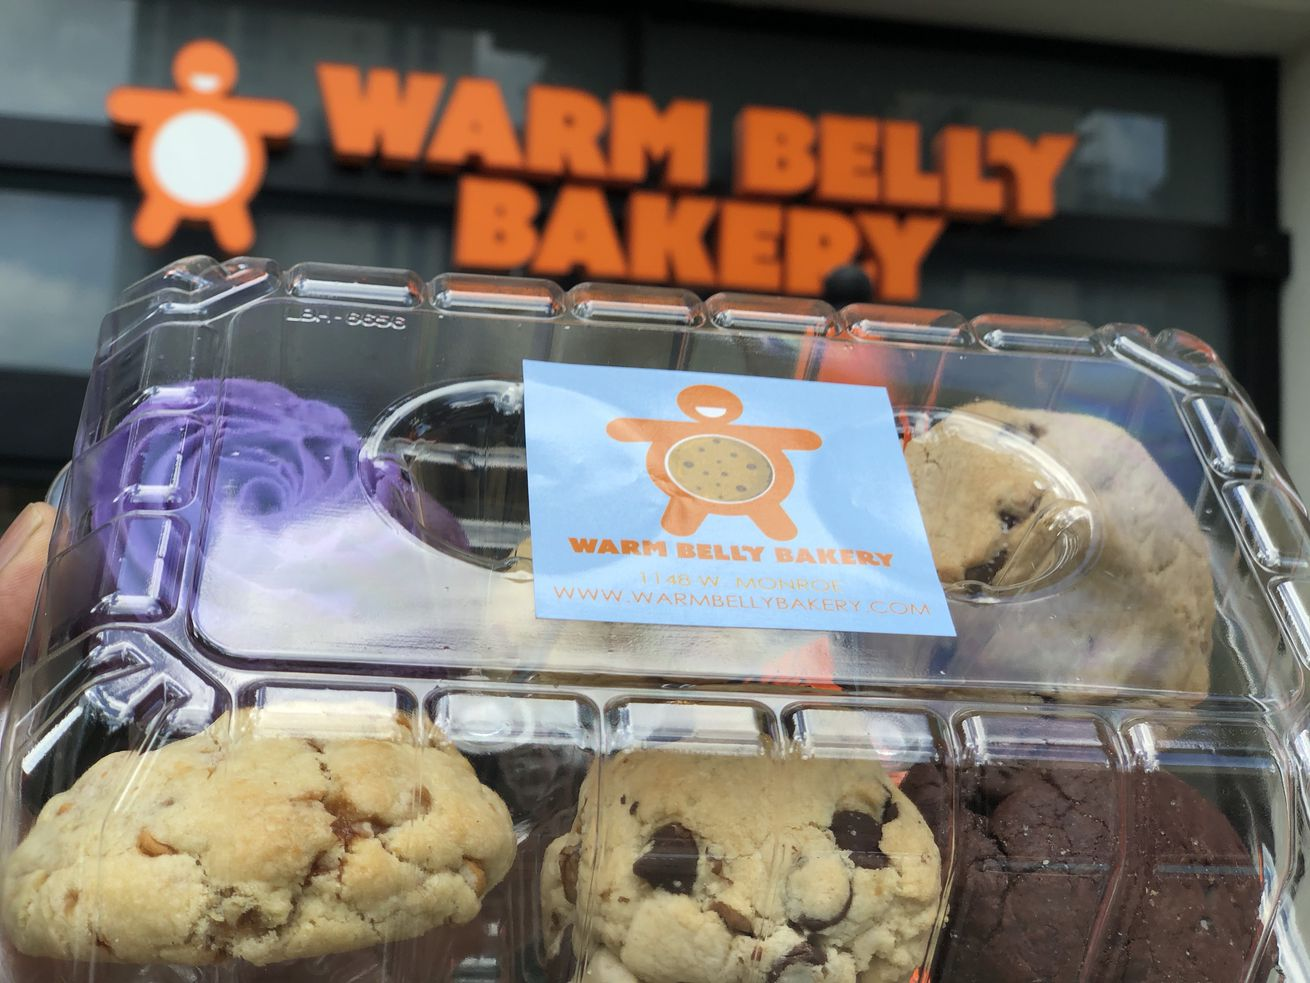 Warm Belly Bakery is now open in Lincoln Park.